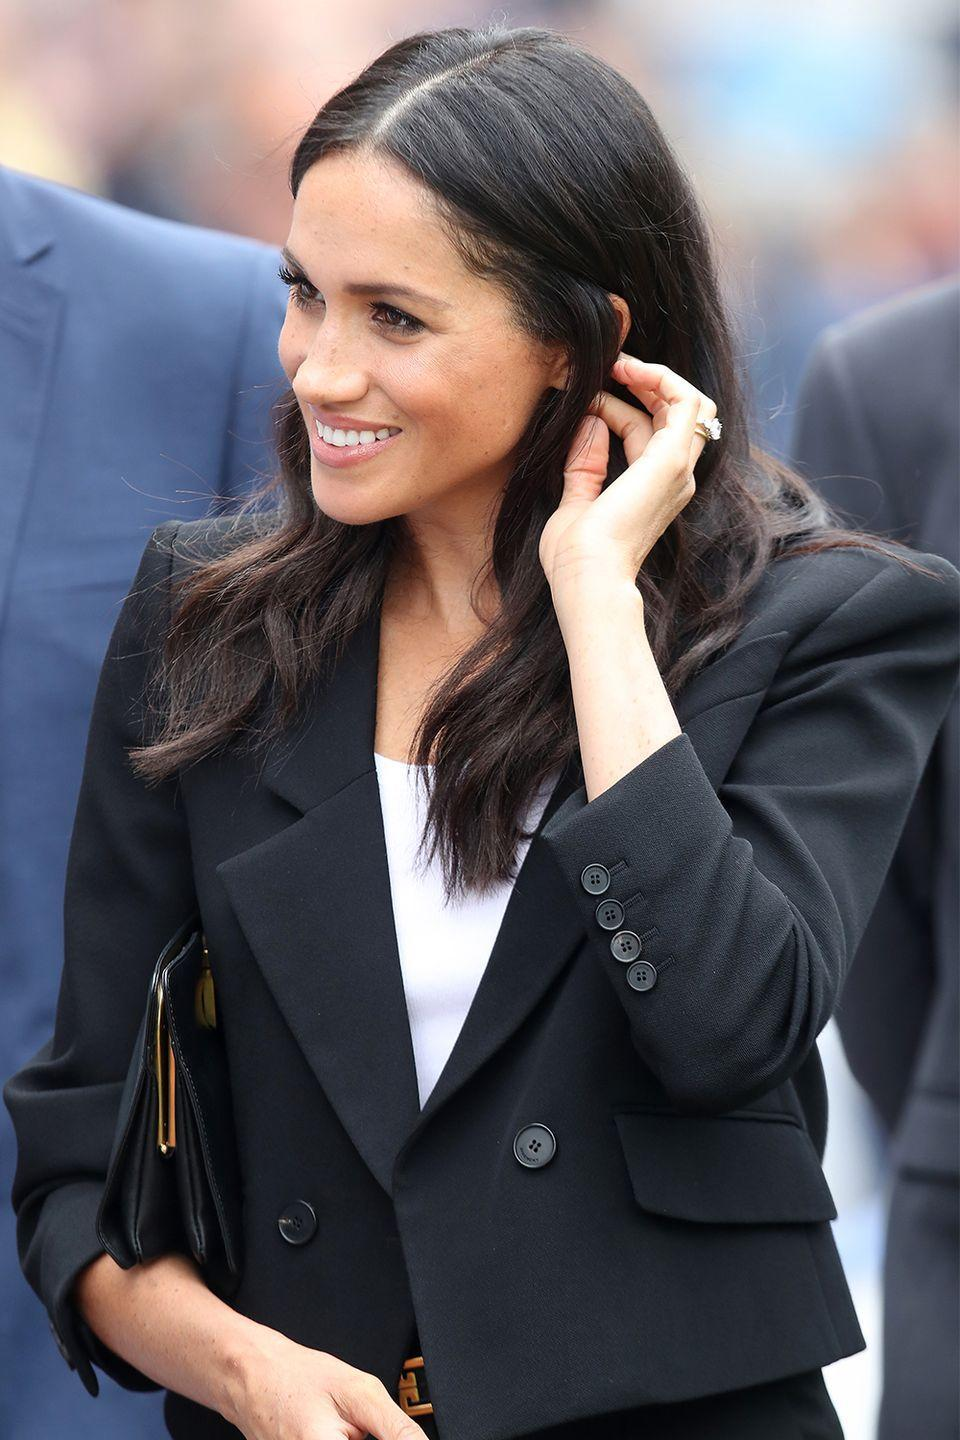 """<p>In addition to being prohibited from running for office, royal family members don't make their political opinions known. But during Meghan's official visit to Ireland earlier this month, an Irish politician wrote in a since-deleted Tweet that the Duchess of Sussex was <a href=""""https://www.marieclaire.com/celebrity/a22117810/meghan-markle-ireland-abortion-referendum/"""" rel=""""nofollow noopener"""" target=""""_blank"""" data-ylk=""""slk:""""pleased"""""""" class=""""link rapid-noclick-resp"""">""""pleased""""</a> with the country's effort to legalize abortion. </p>"""